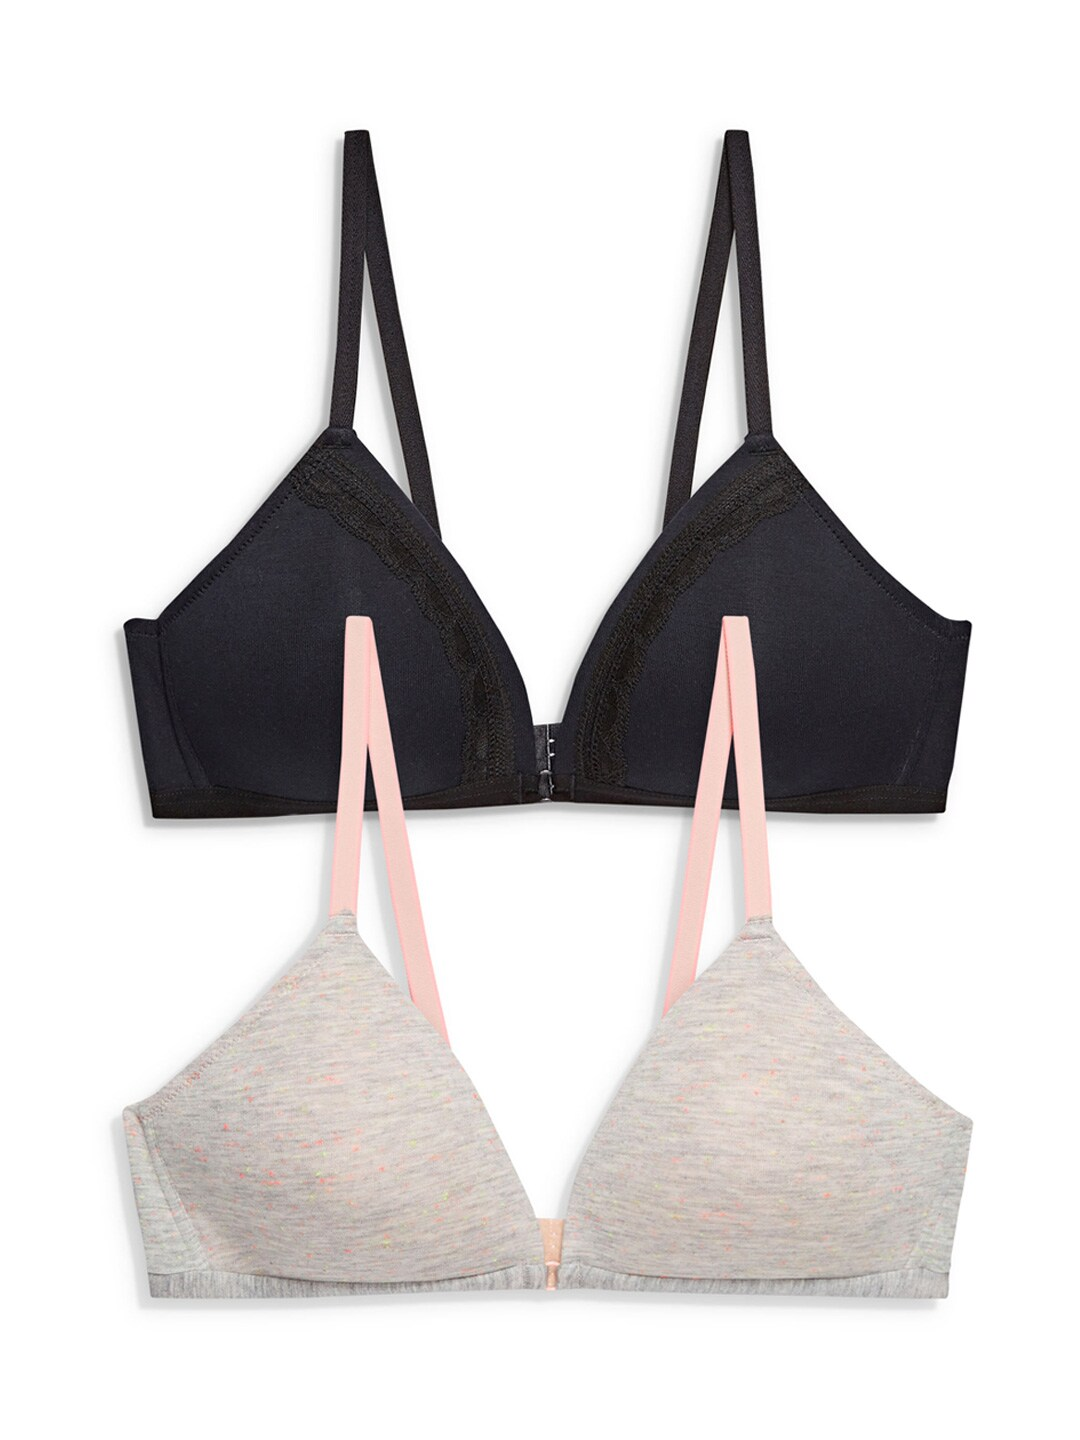 next Black & Beige Pack of 2 Non-Wired Lightly Padded Push-Up Bra 7562684073475740347 image